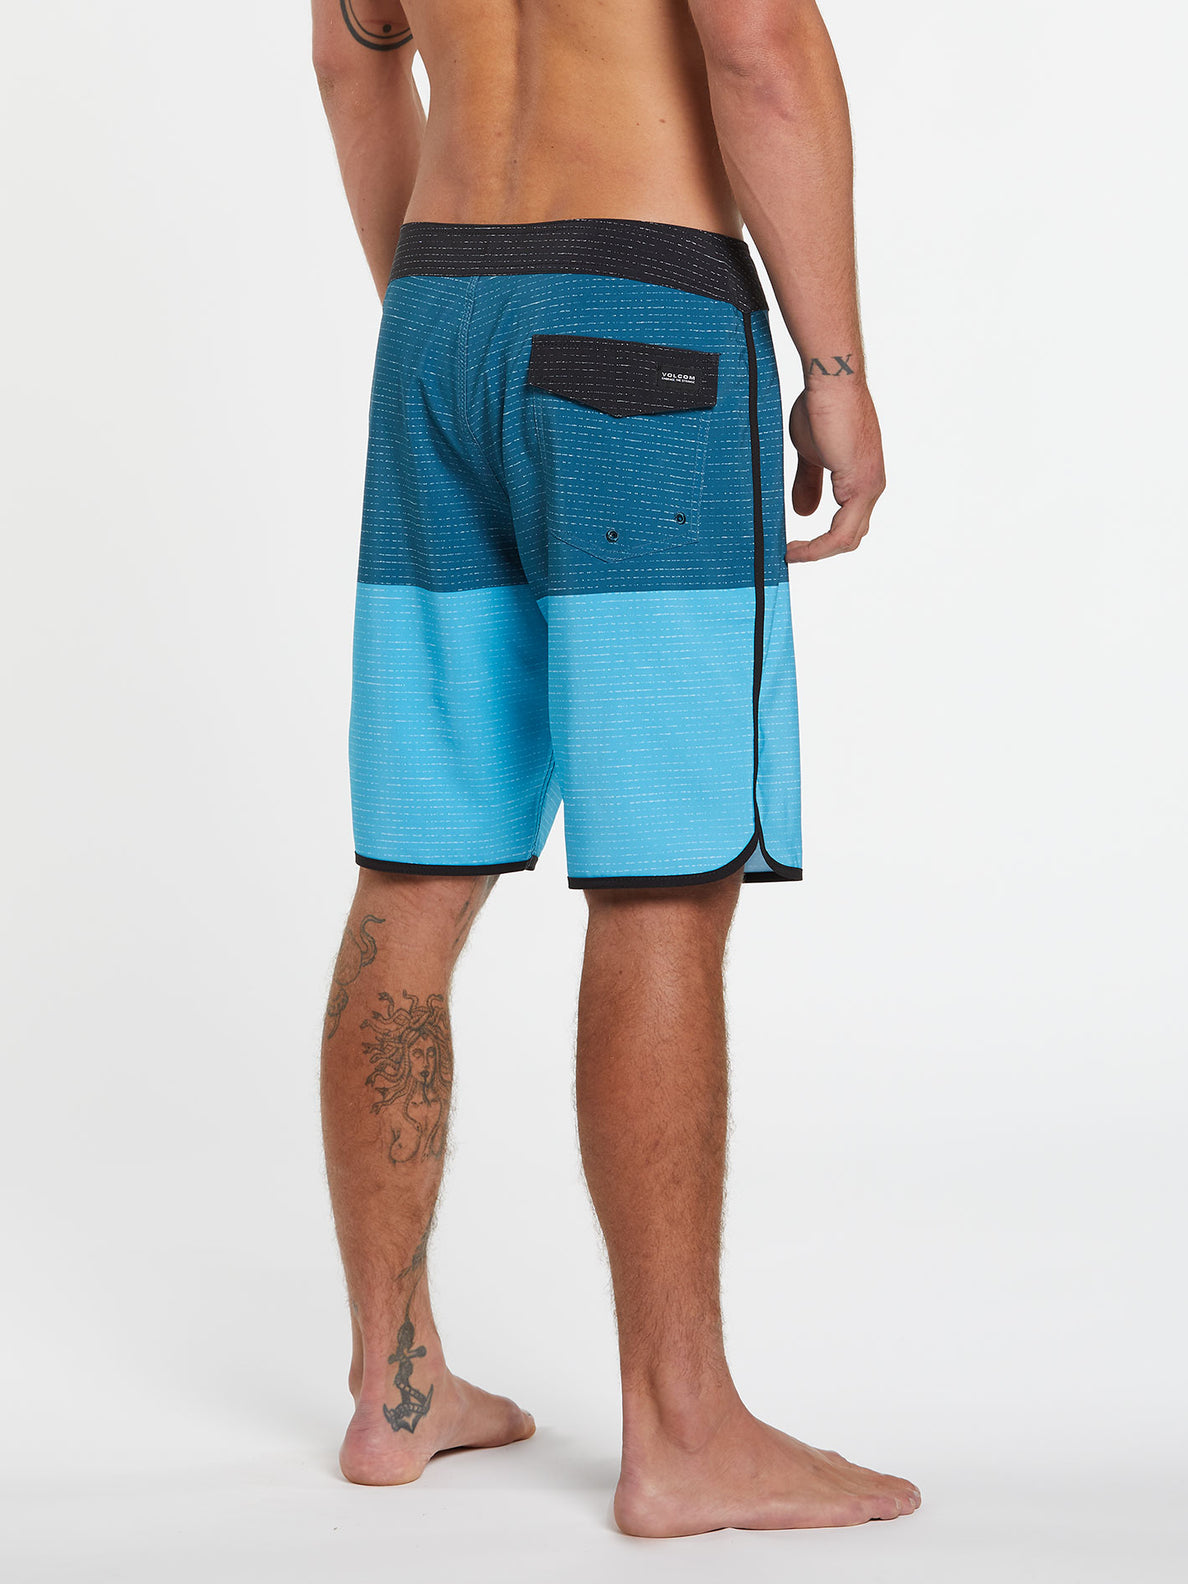 Lido Heather Scallop Mod-Tech Trunks - Rincon Blue (A0822015_RNC) [2]